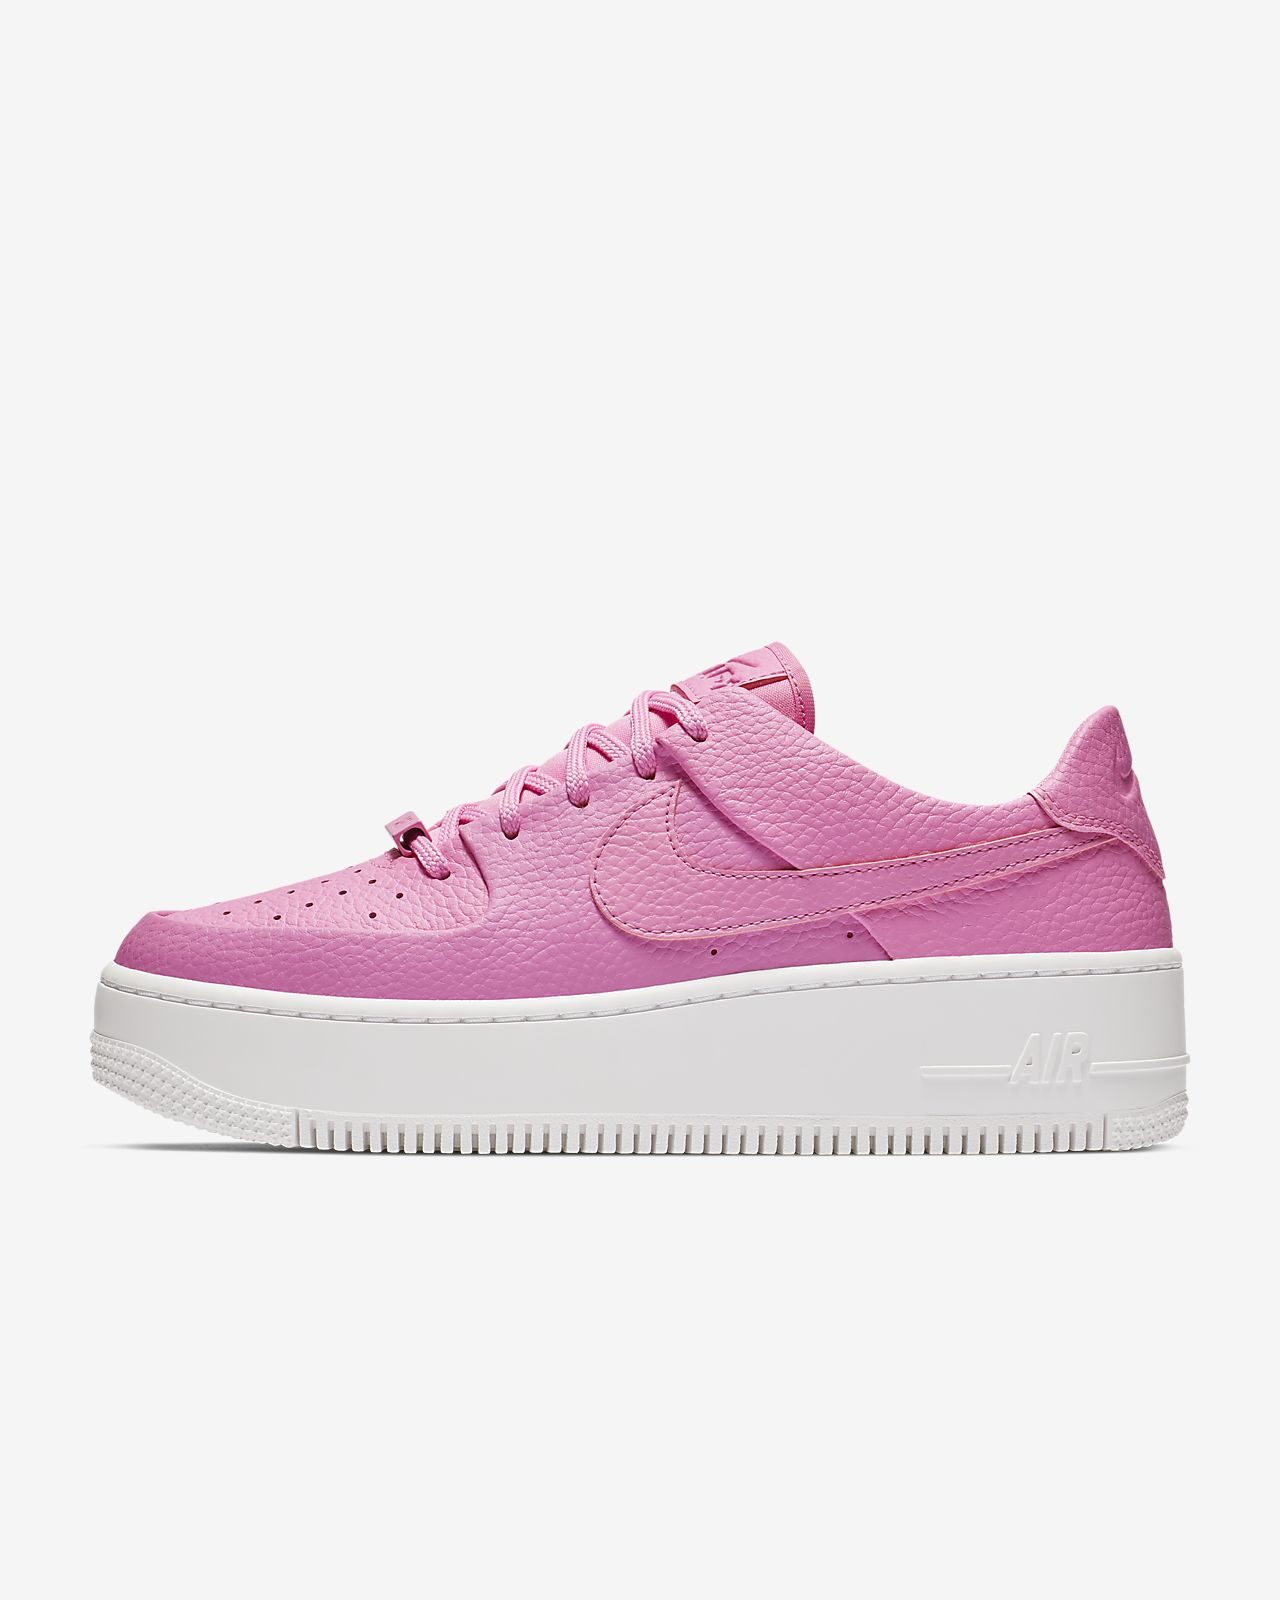 Mujer Low Sage Air Nike Force 1 Zapatillas O0Pknw8